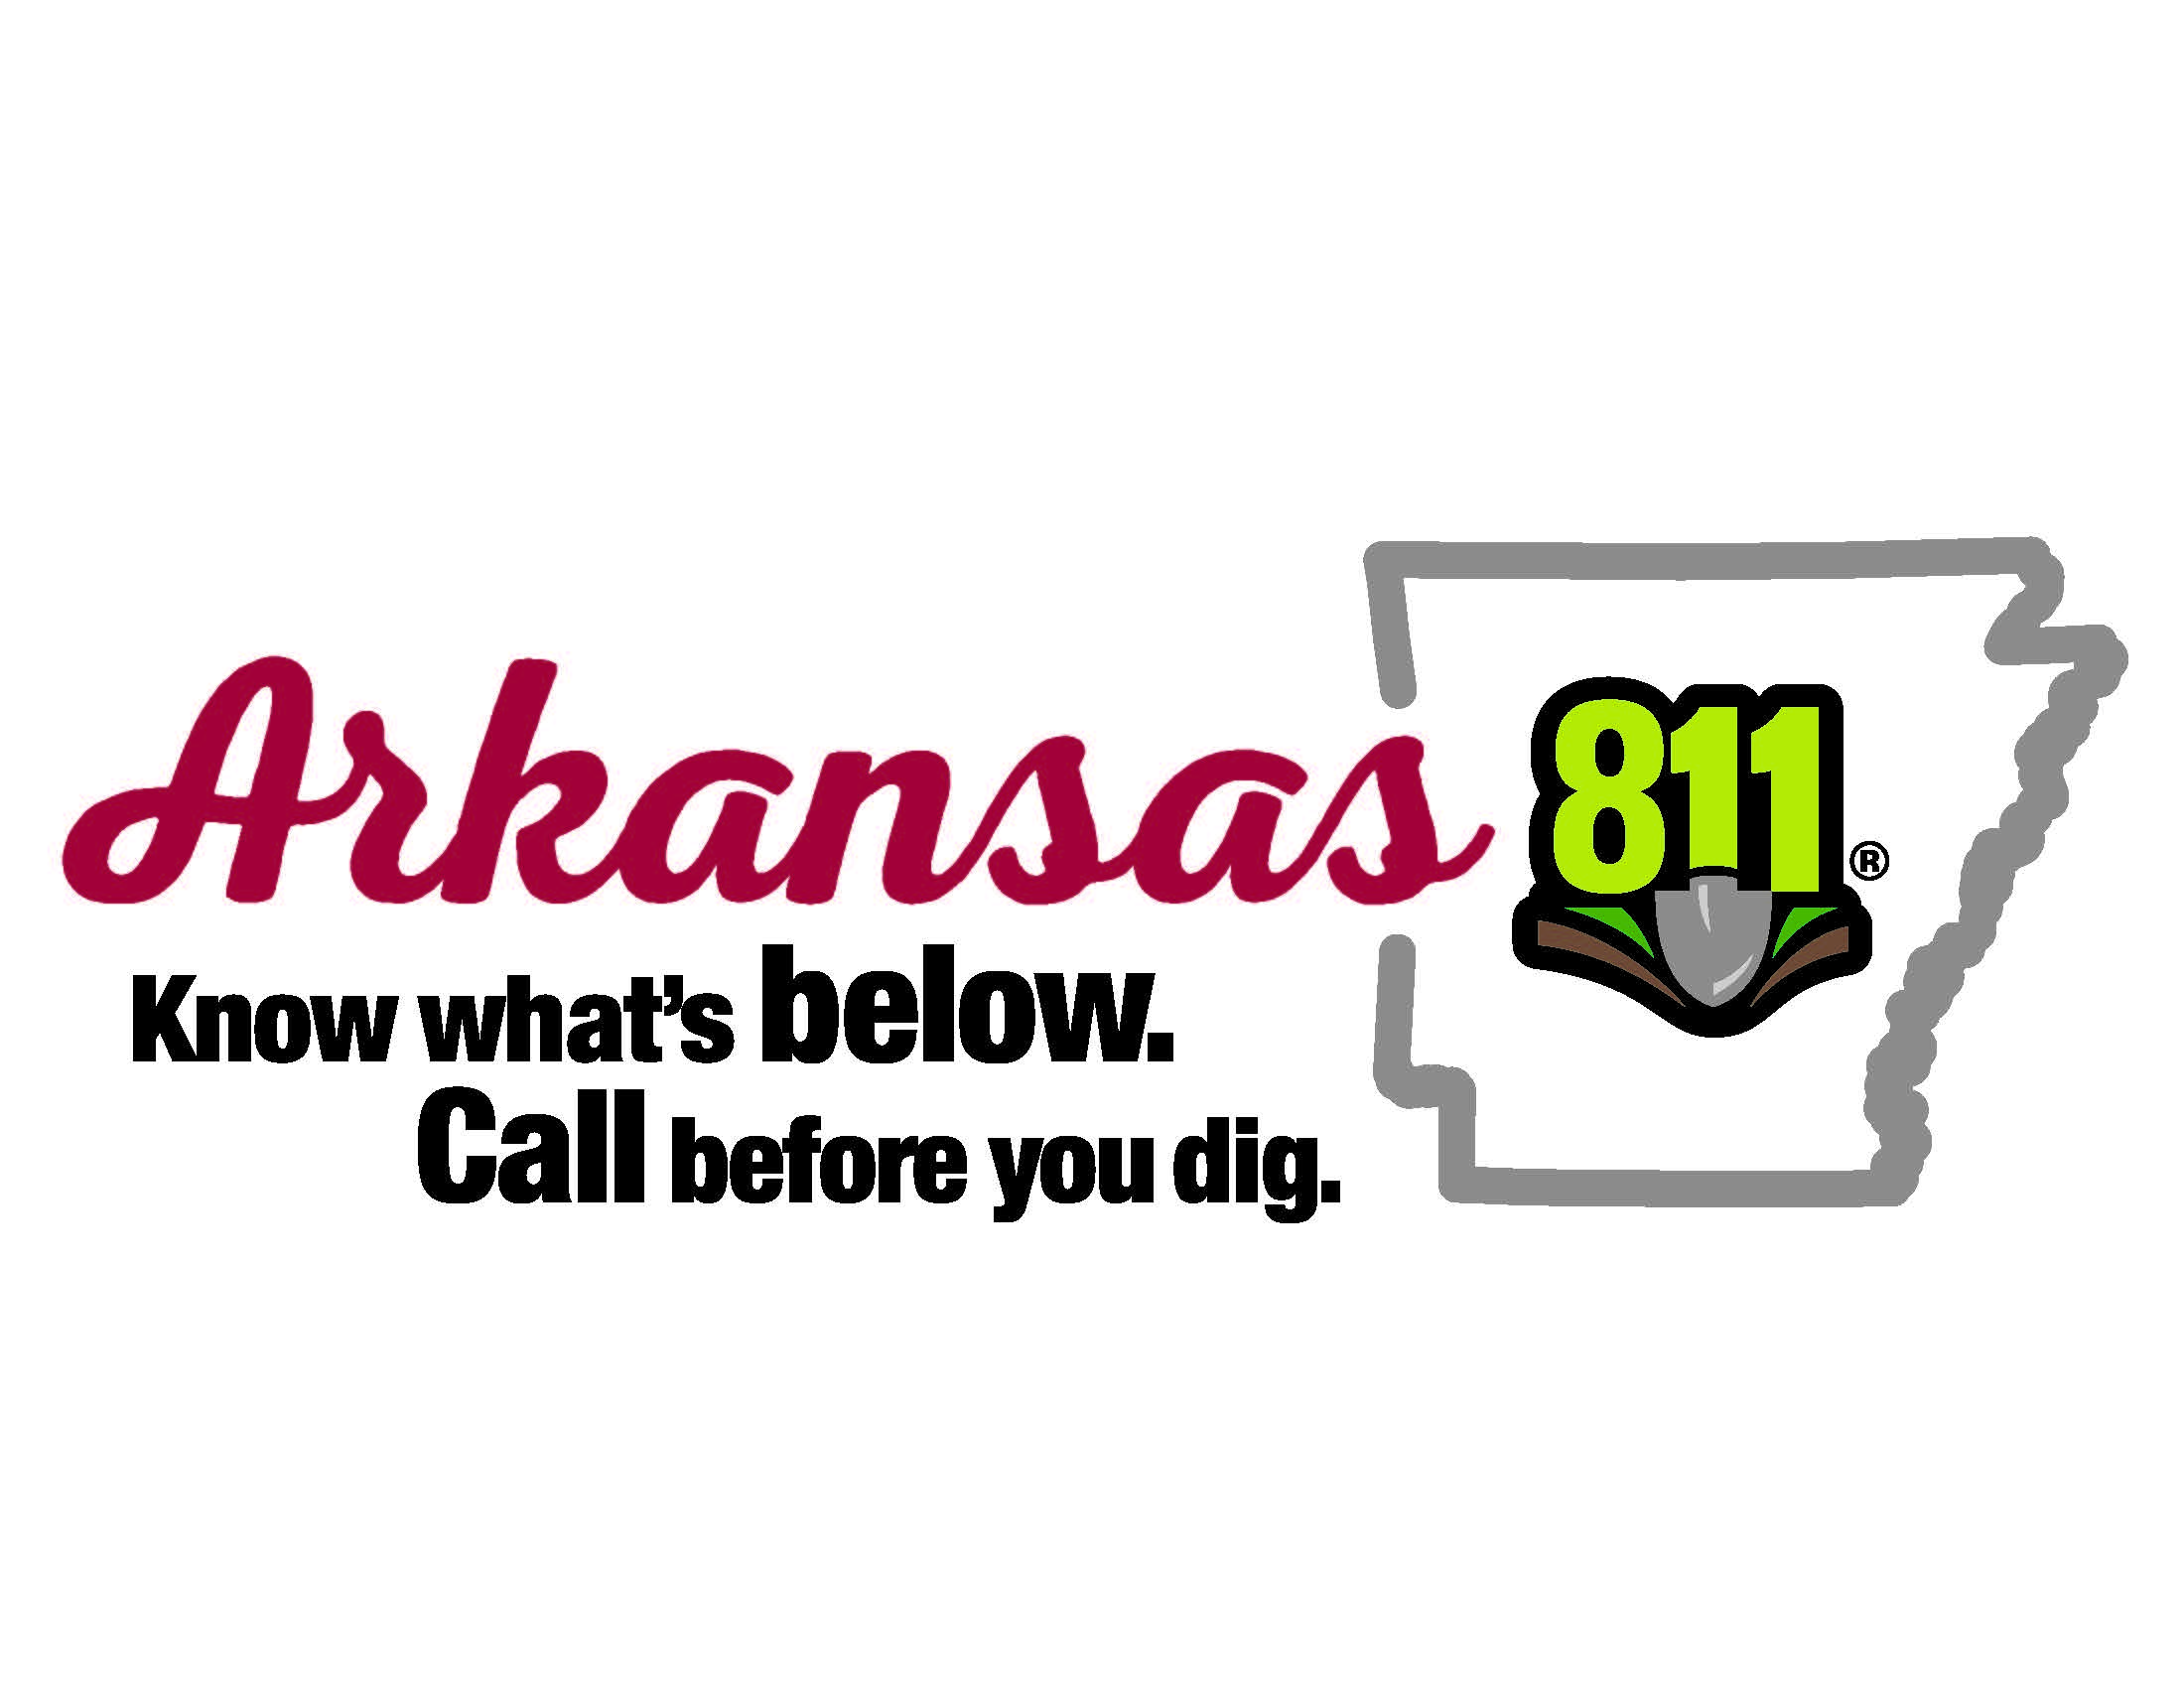 Logo of Arkansas 811